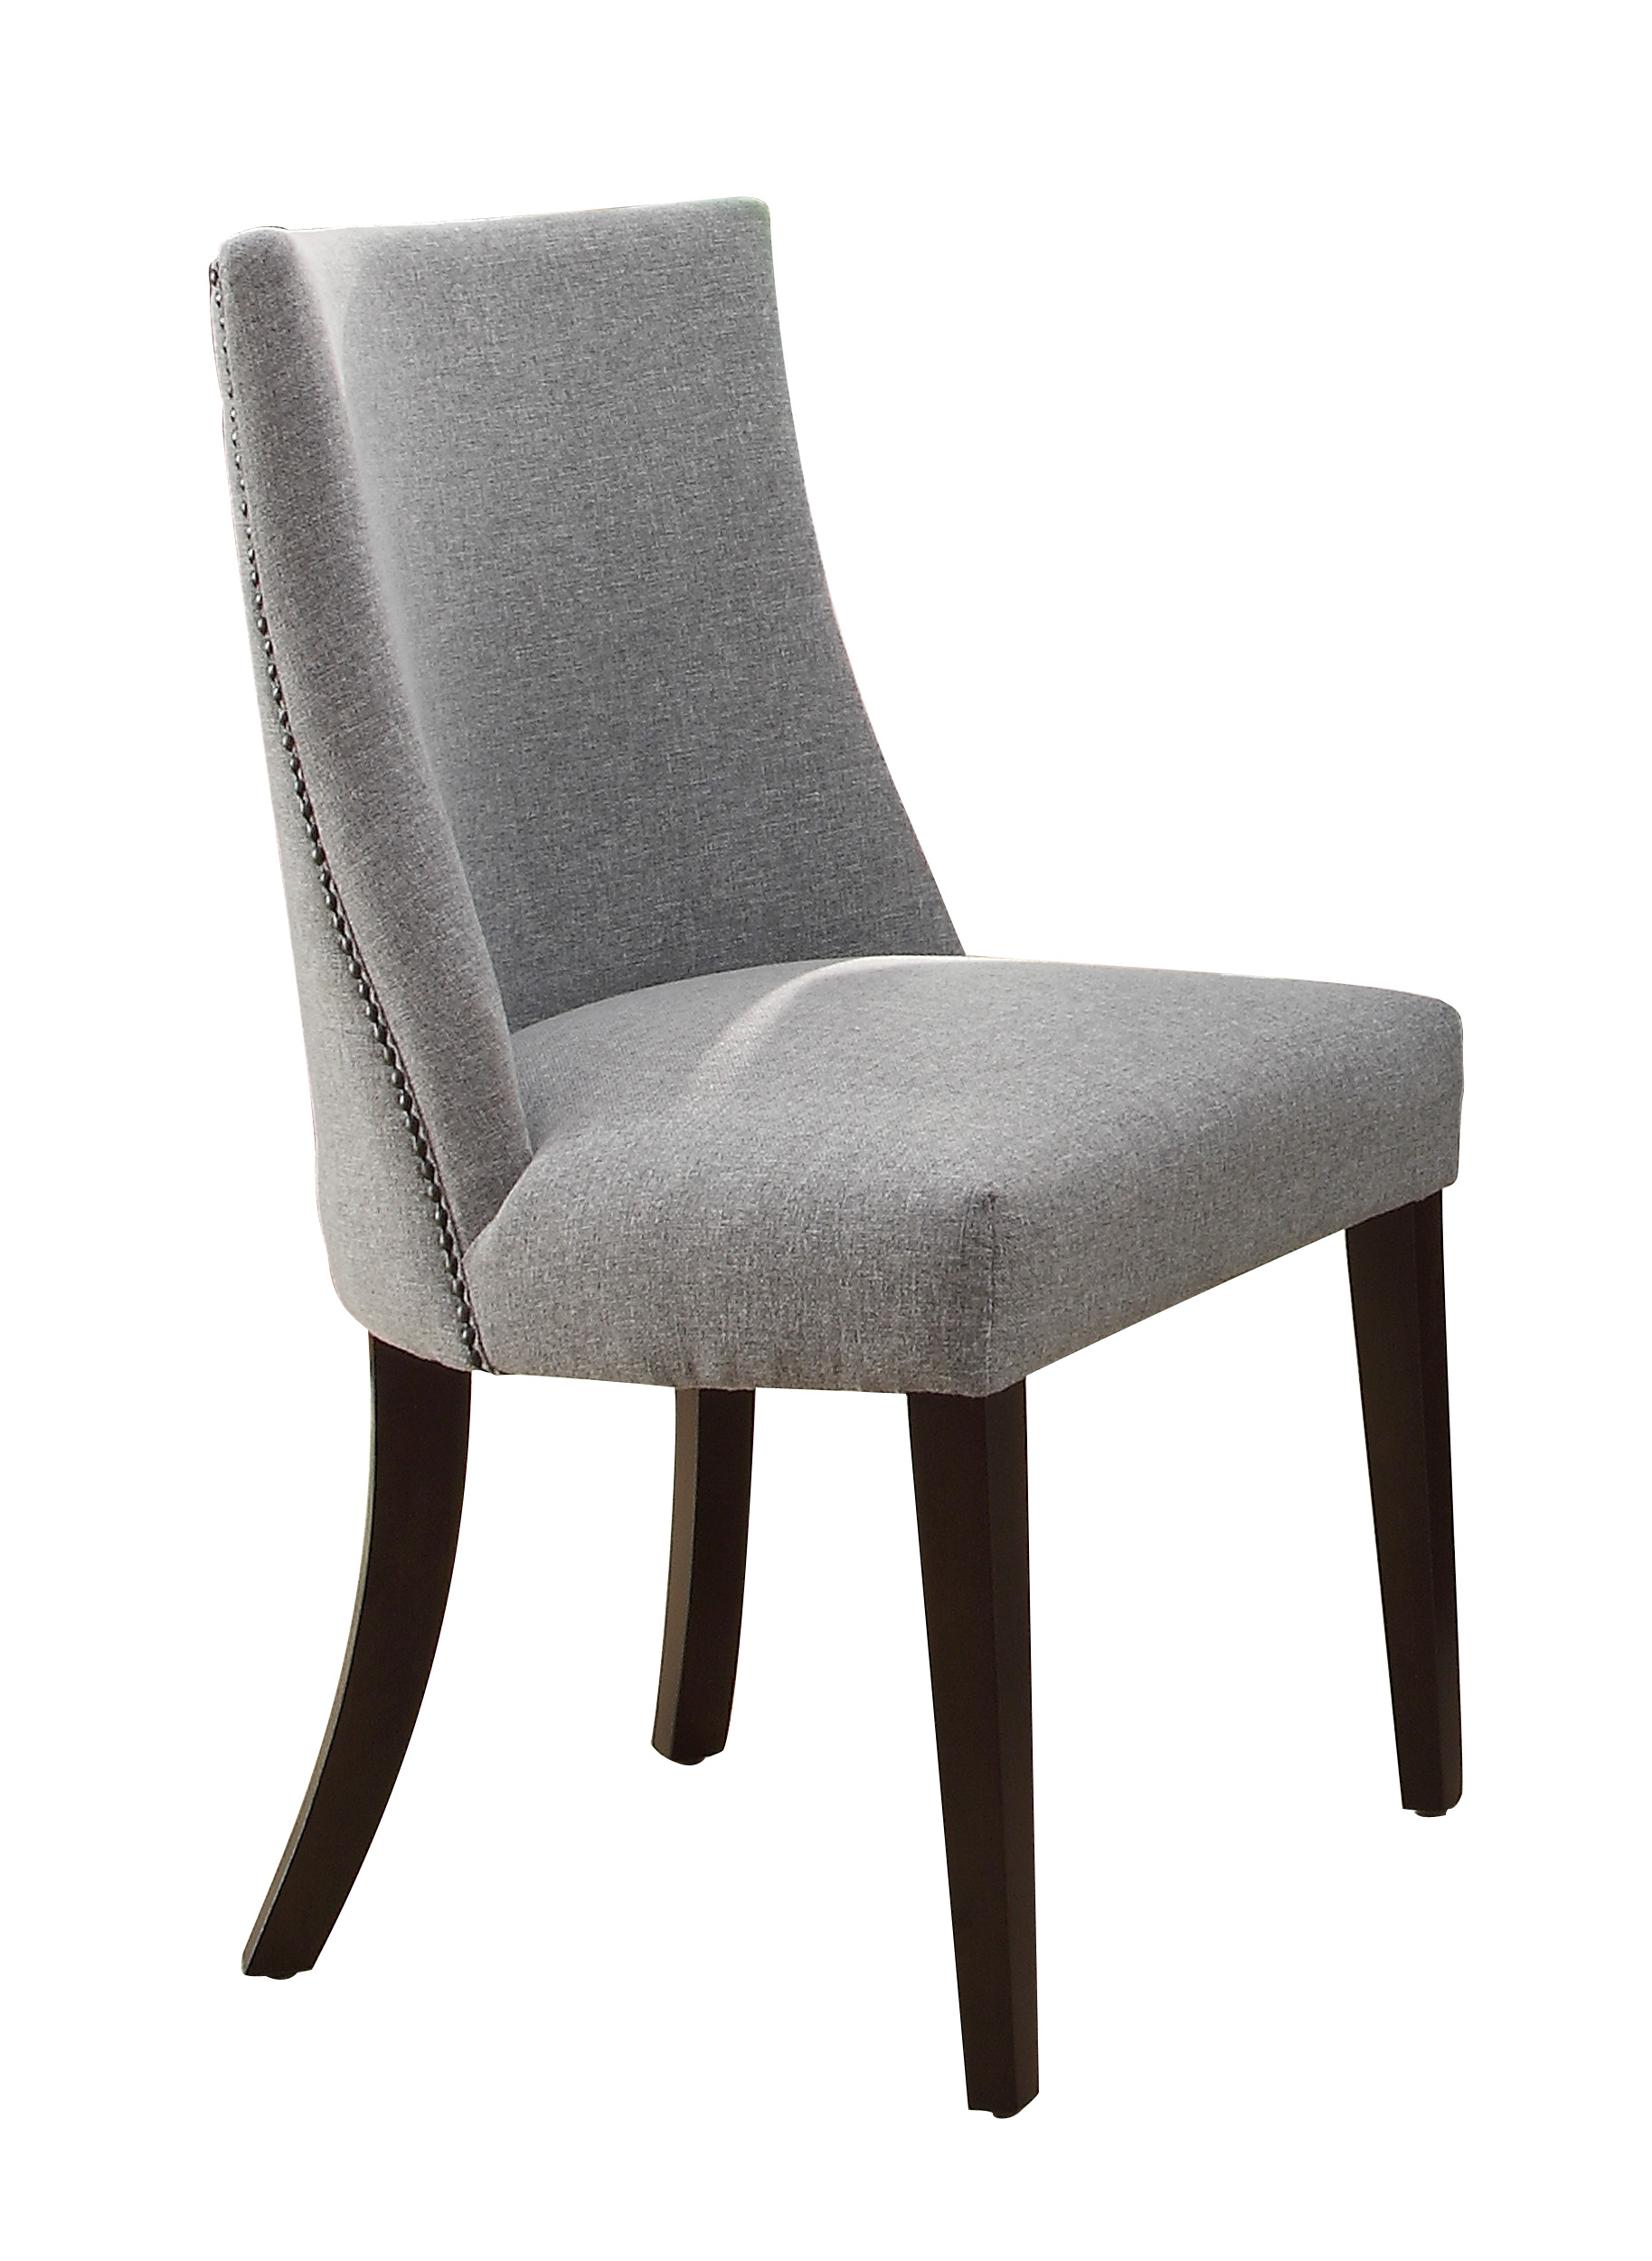 Dining Chairs Chicago Grey Upholstered Side Dining Chair Set Of 2